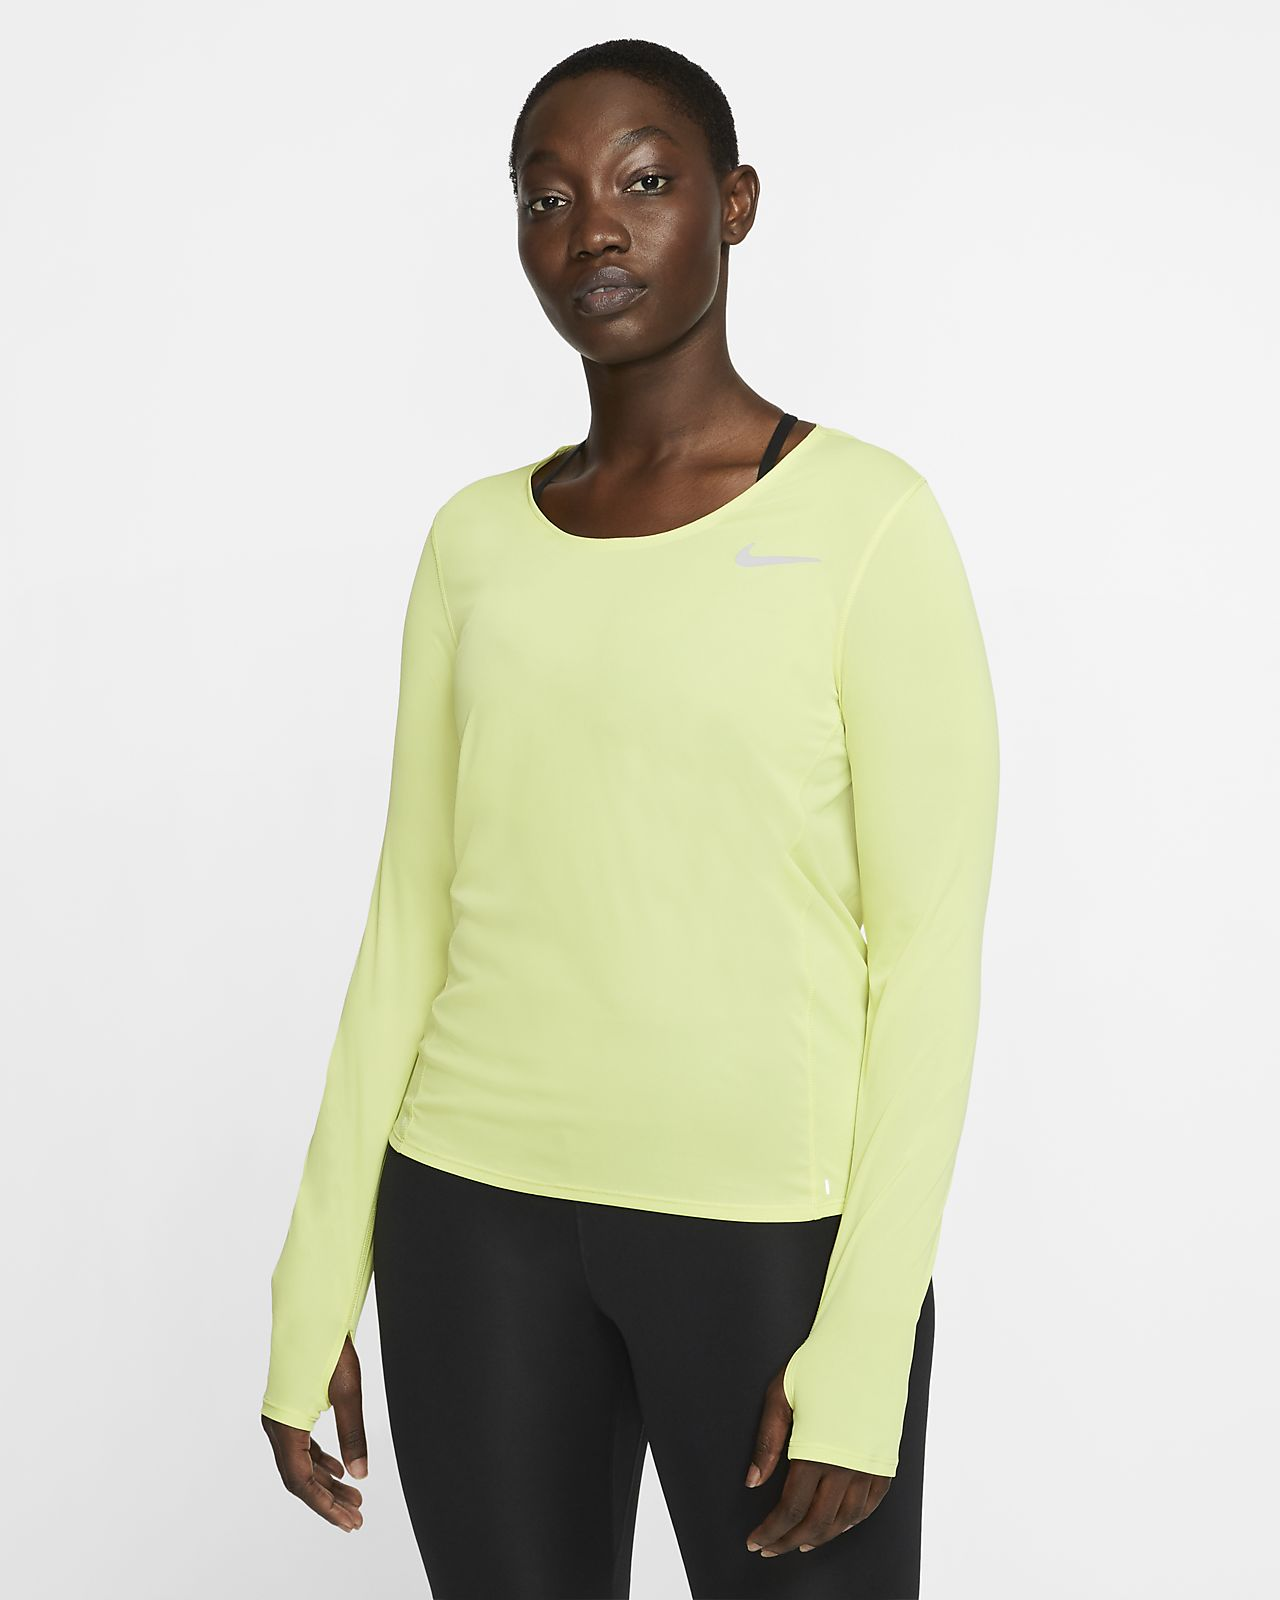 Nike Women's Long Sleeve Running Top. Nike NL